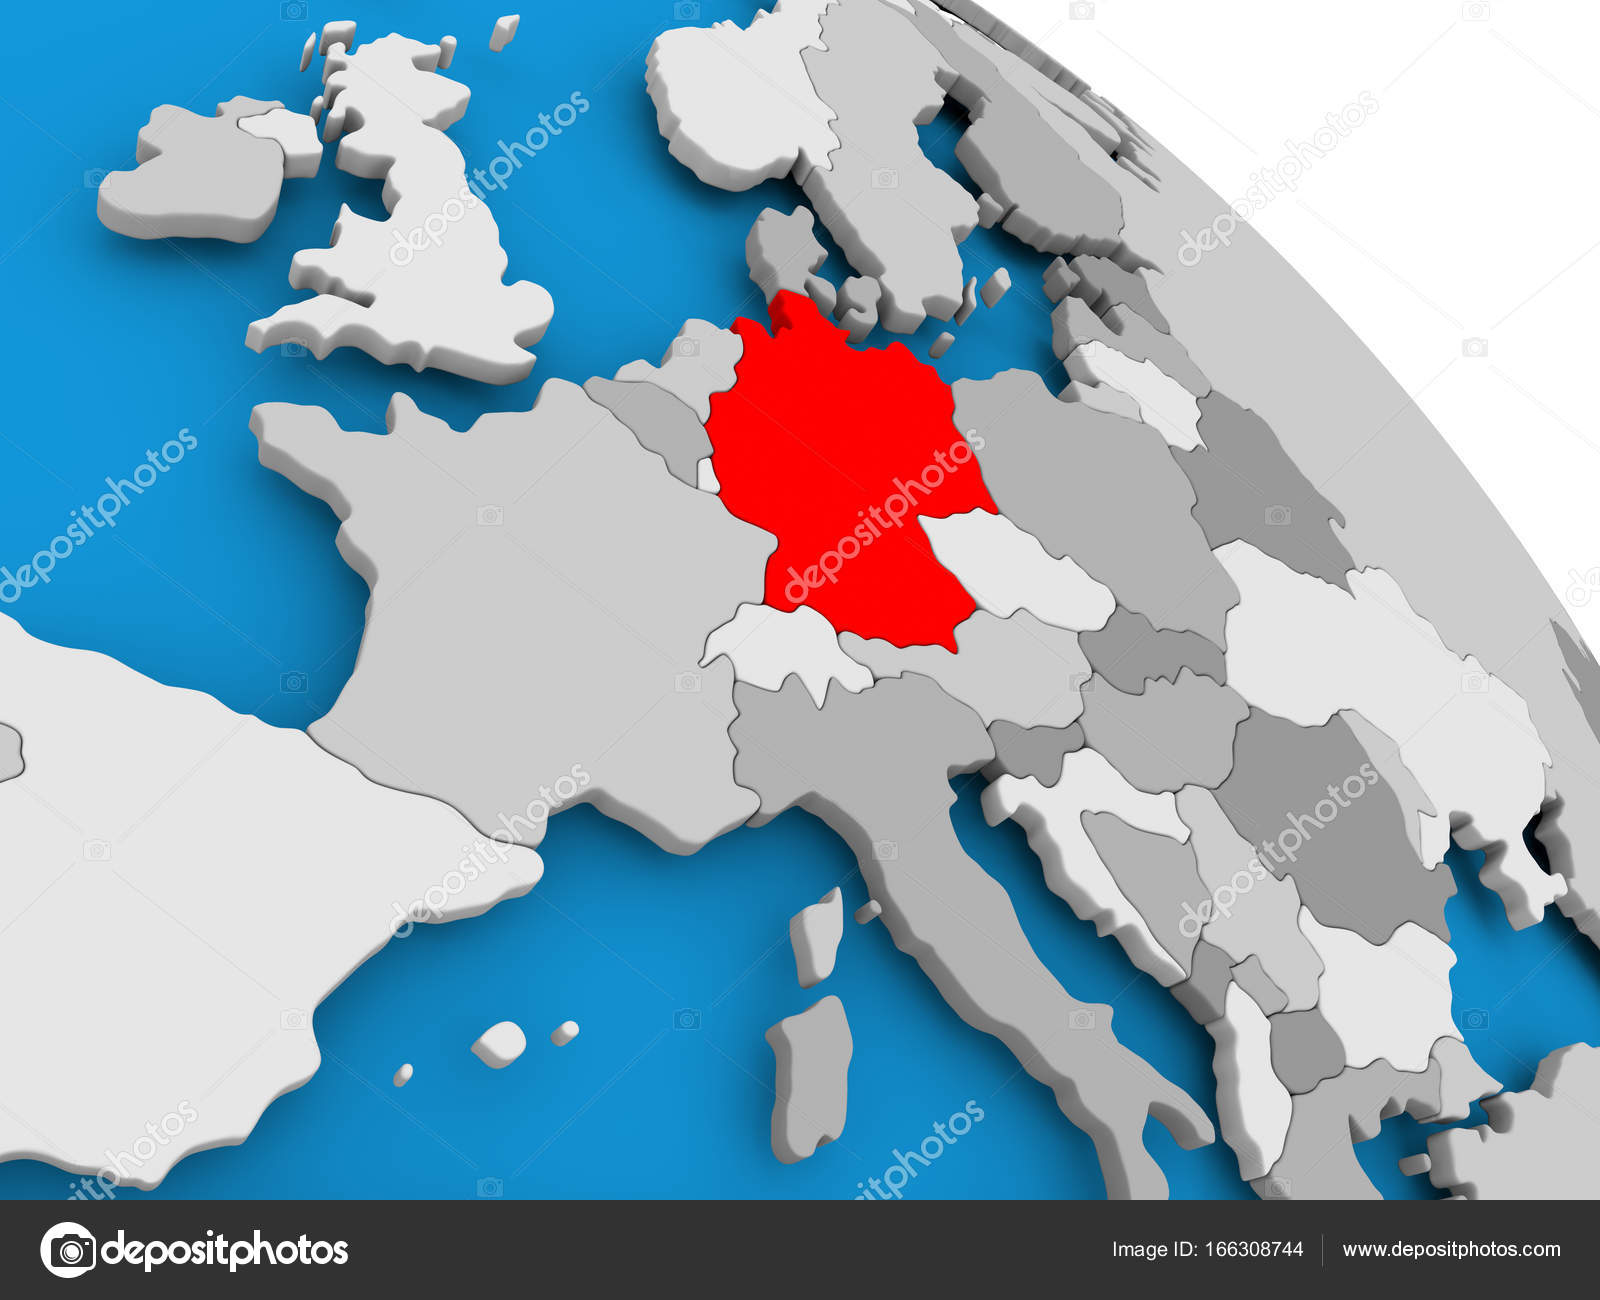 Germany in red on map stock photo tomiger 166308744 illustration of germany highlighted in red on globe 3d illustration photo by tomiger gumiabroncs Choice Image